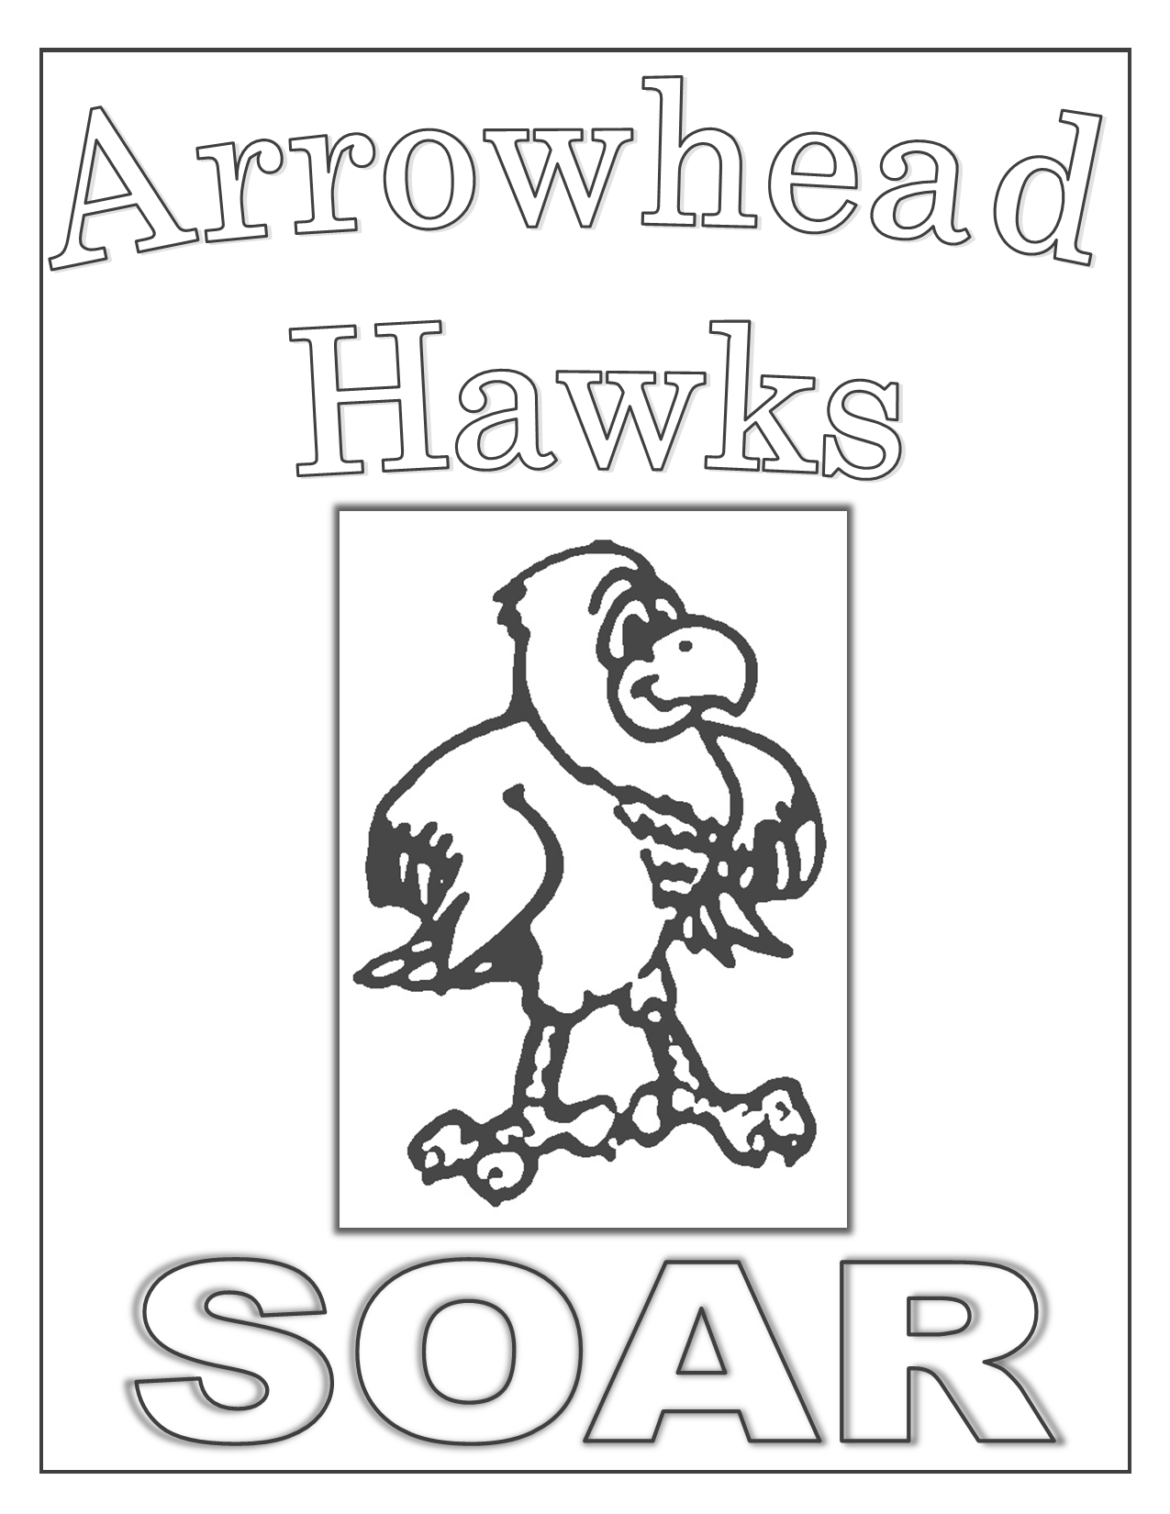 Show Your Arrowhead Pride!